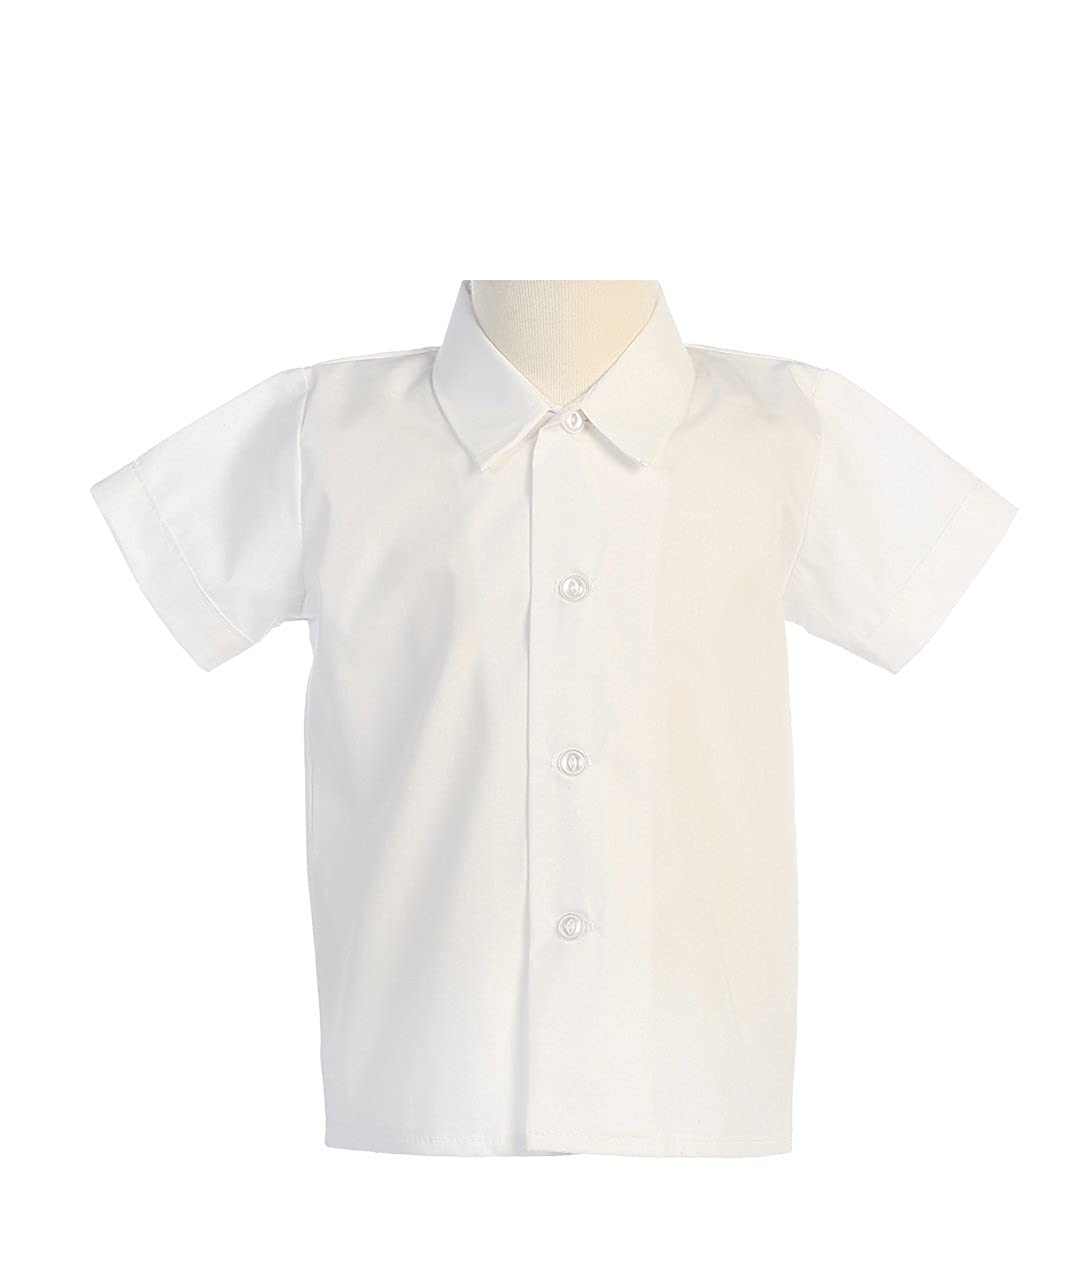 Lito Baby Boys Short Sleeved Simple Dress Shirt White or Ivory - Infant to Toddler